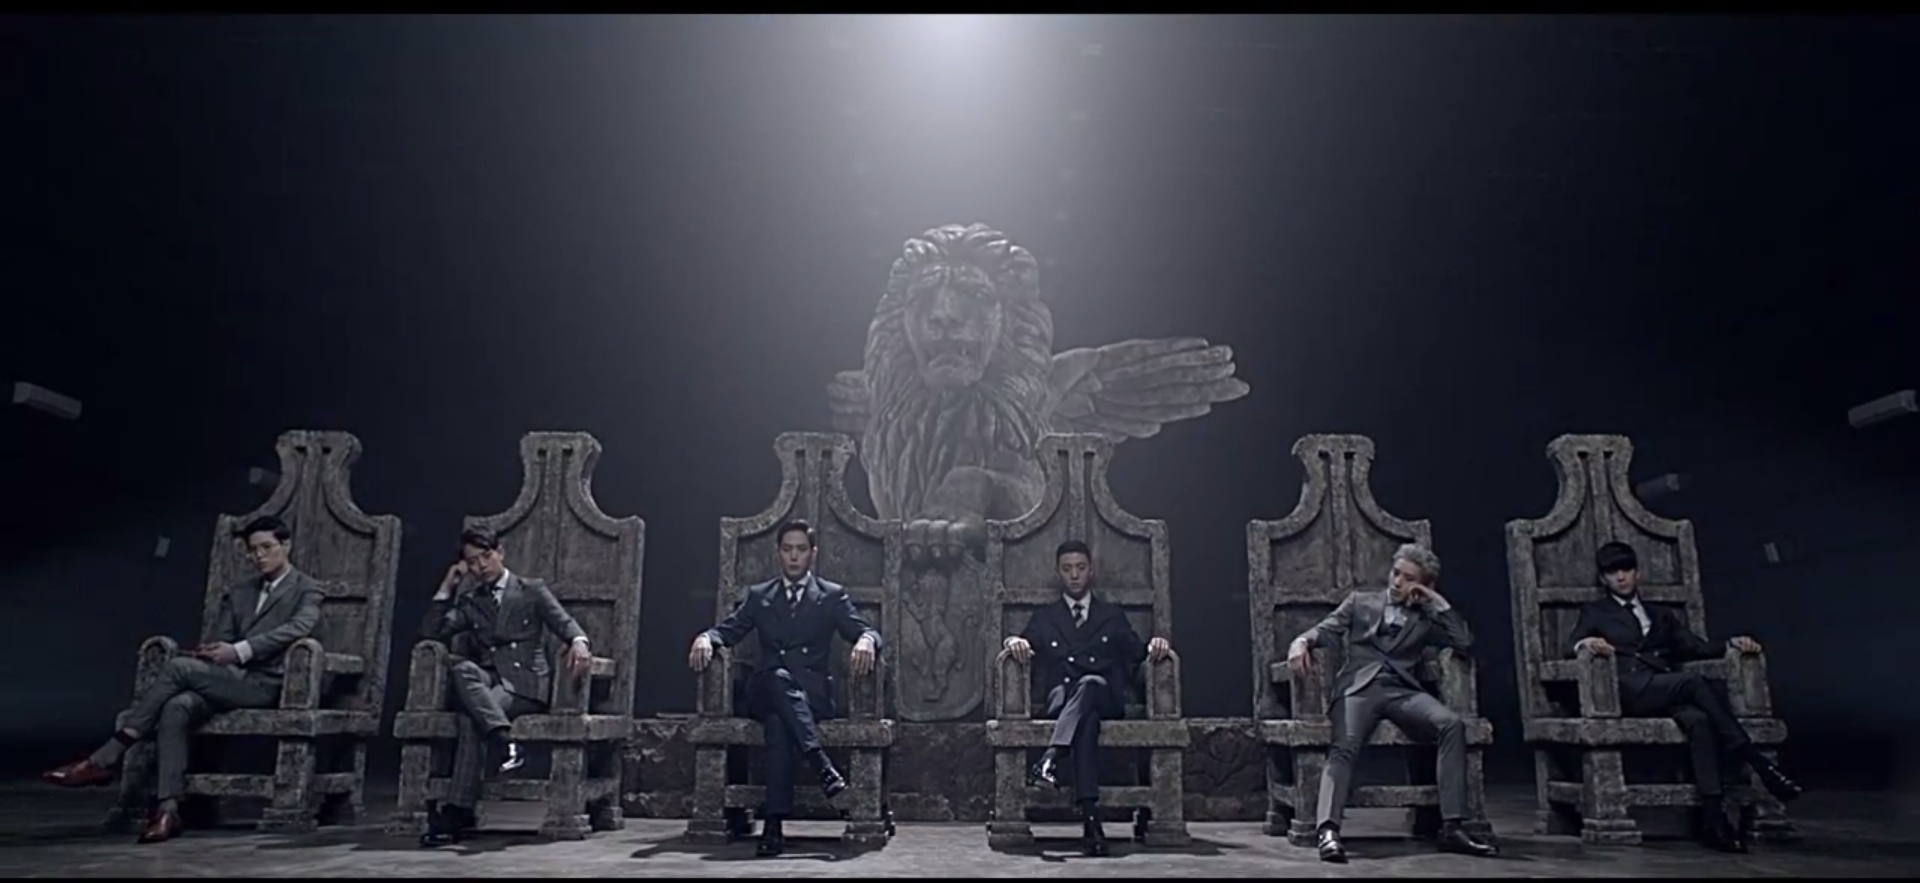 B.A.P – Young, Wild & Free